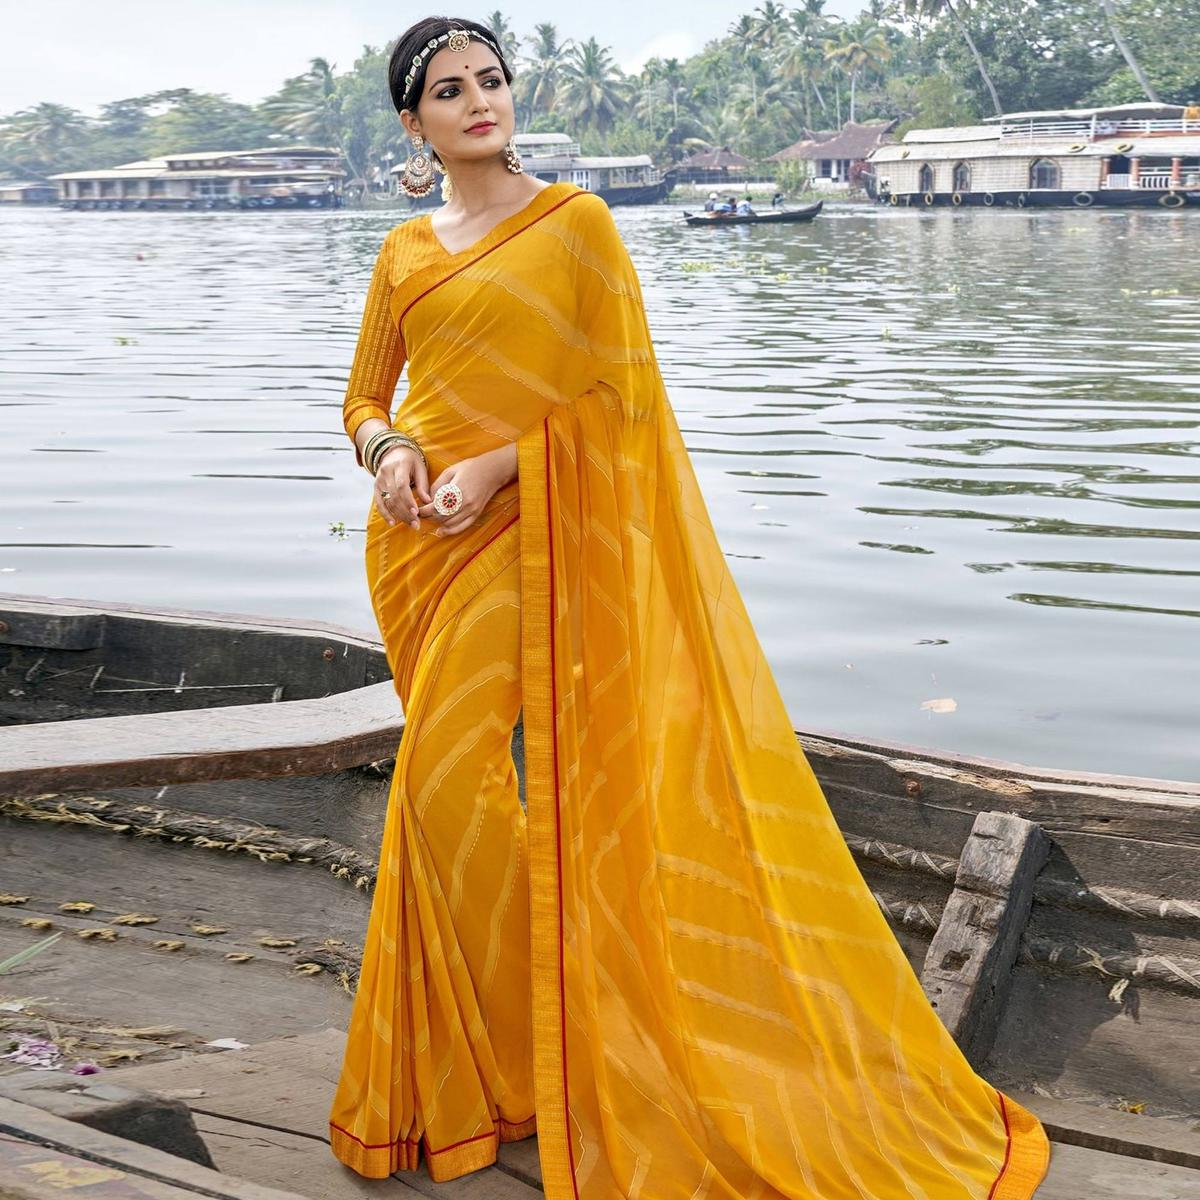 Triveni Yellow Colored Georgette Foil Printed Saree With Blouse Piece